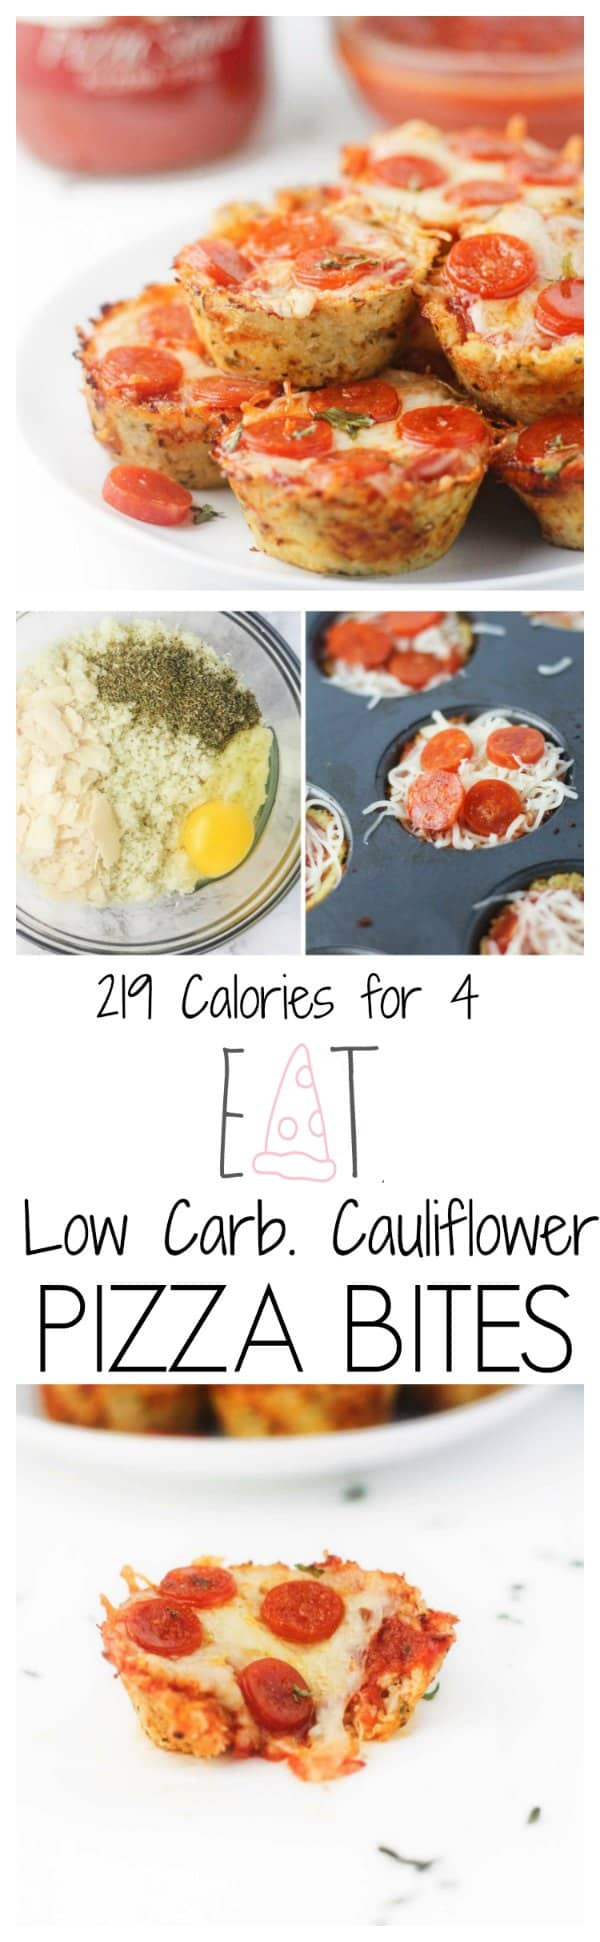 Low Carb Cauliflower Pizza Bites - It\'s Cheat Day Everyday